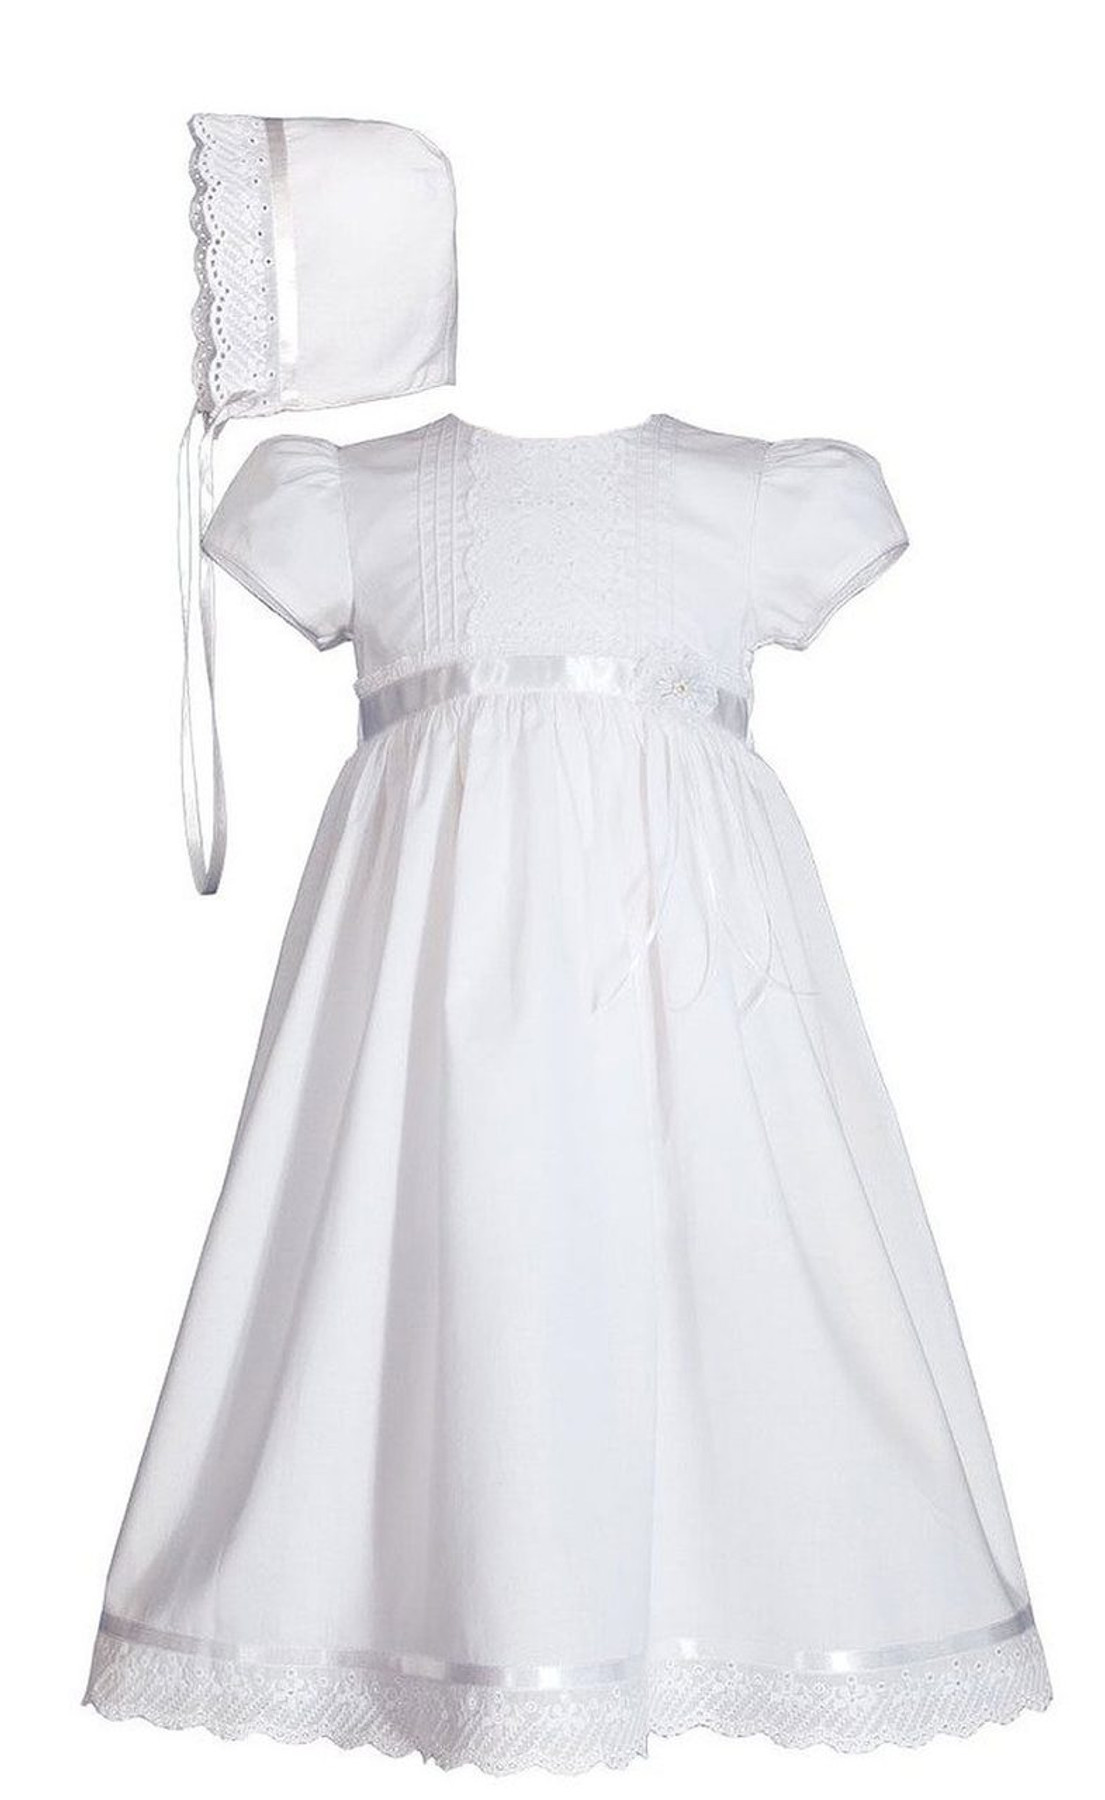 Girls Cotton Christening Gown And Baptism Dress With Lace And Ribbon 24 Length